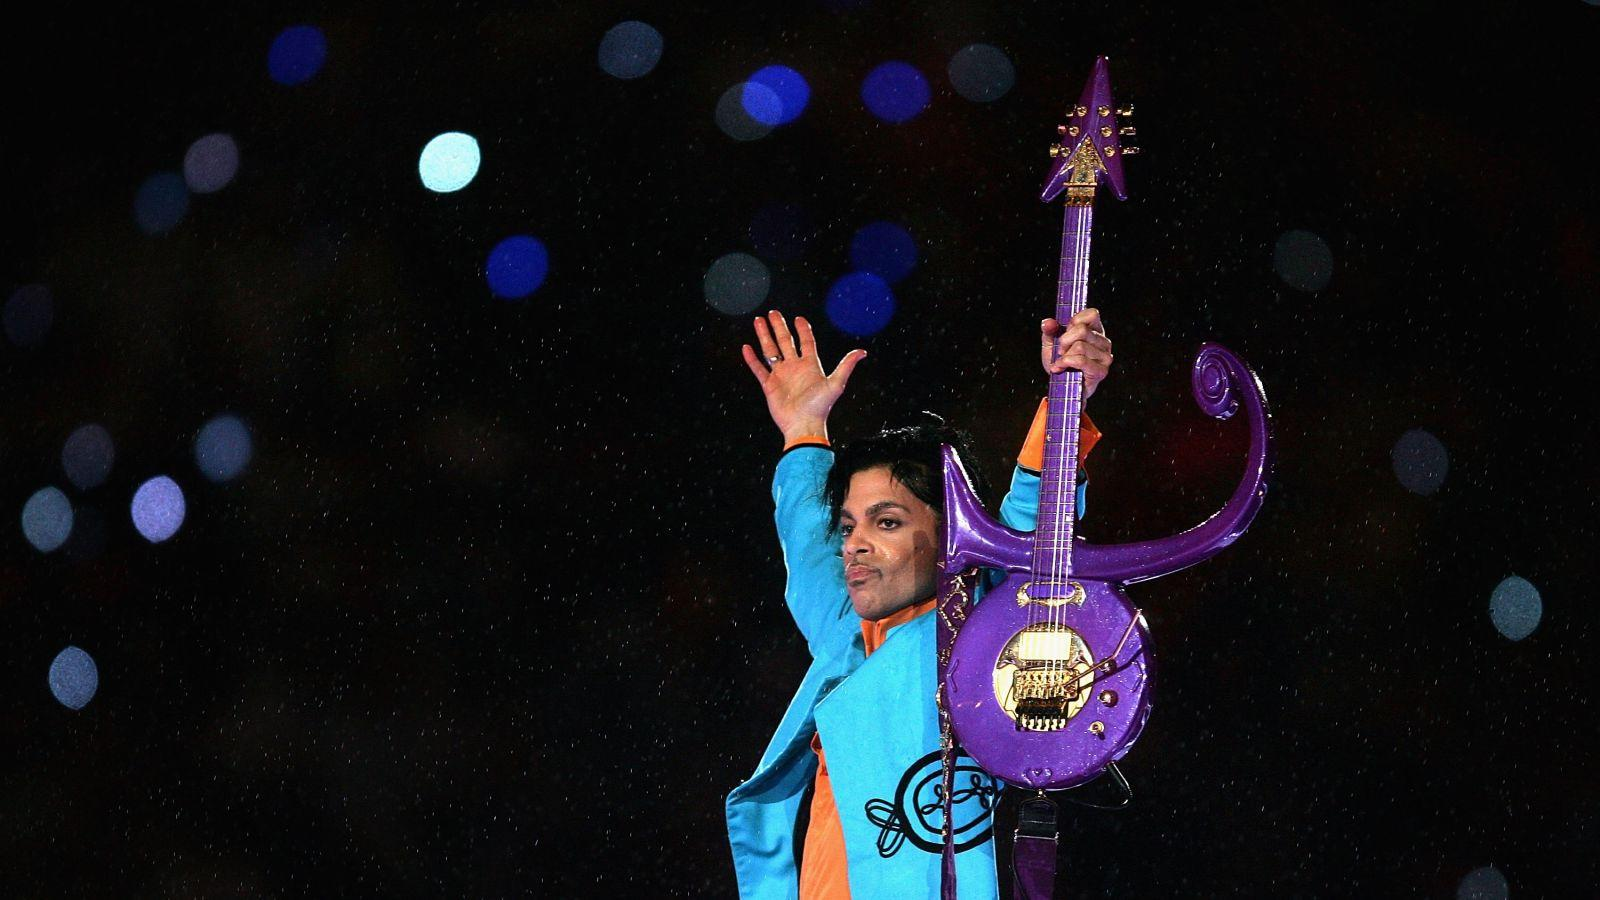 Price holds up purple guitar